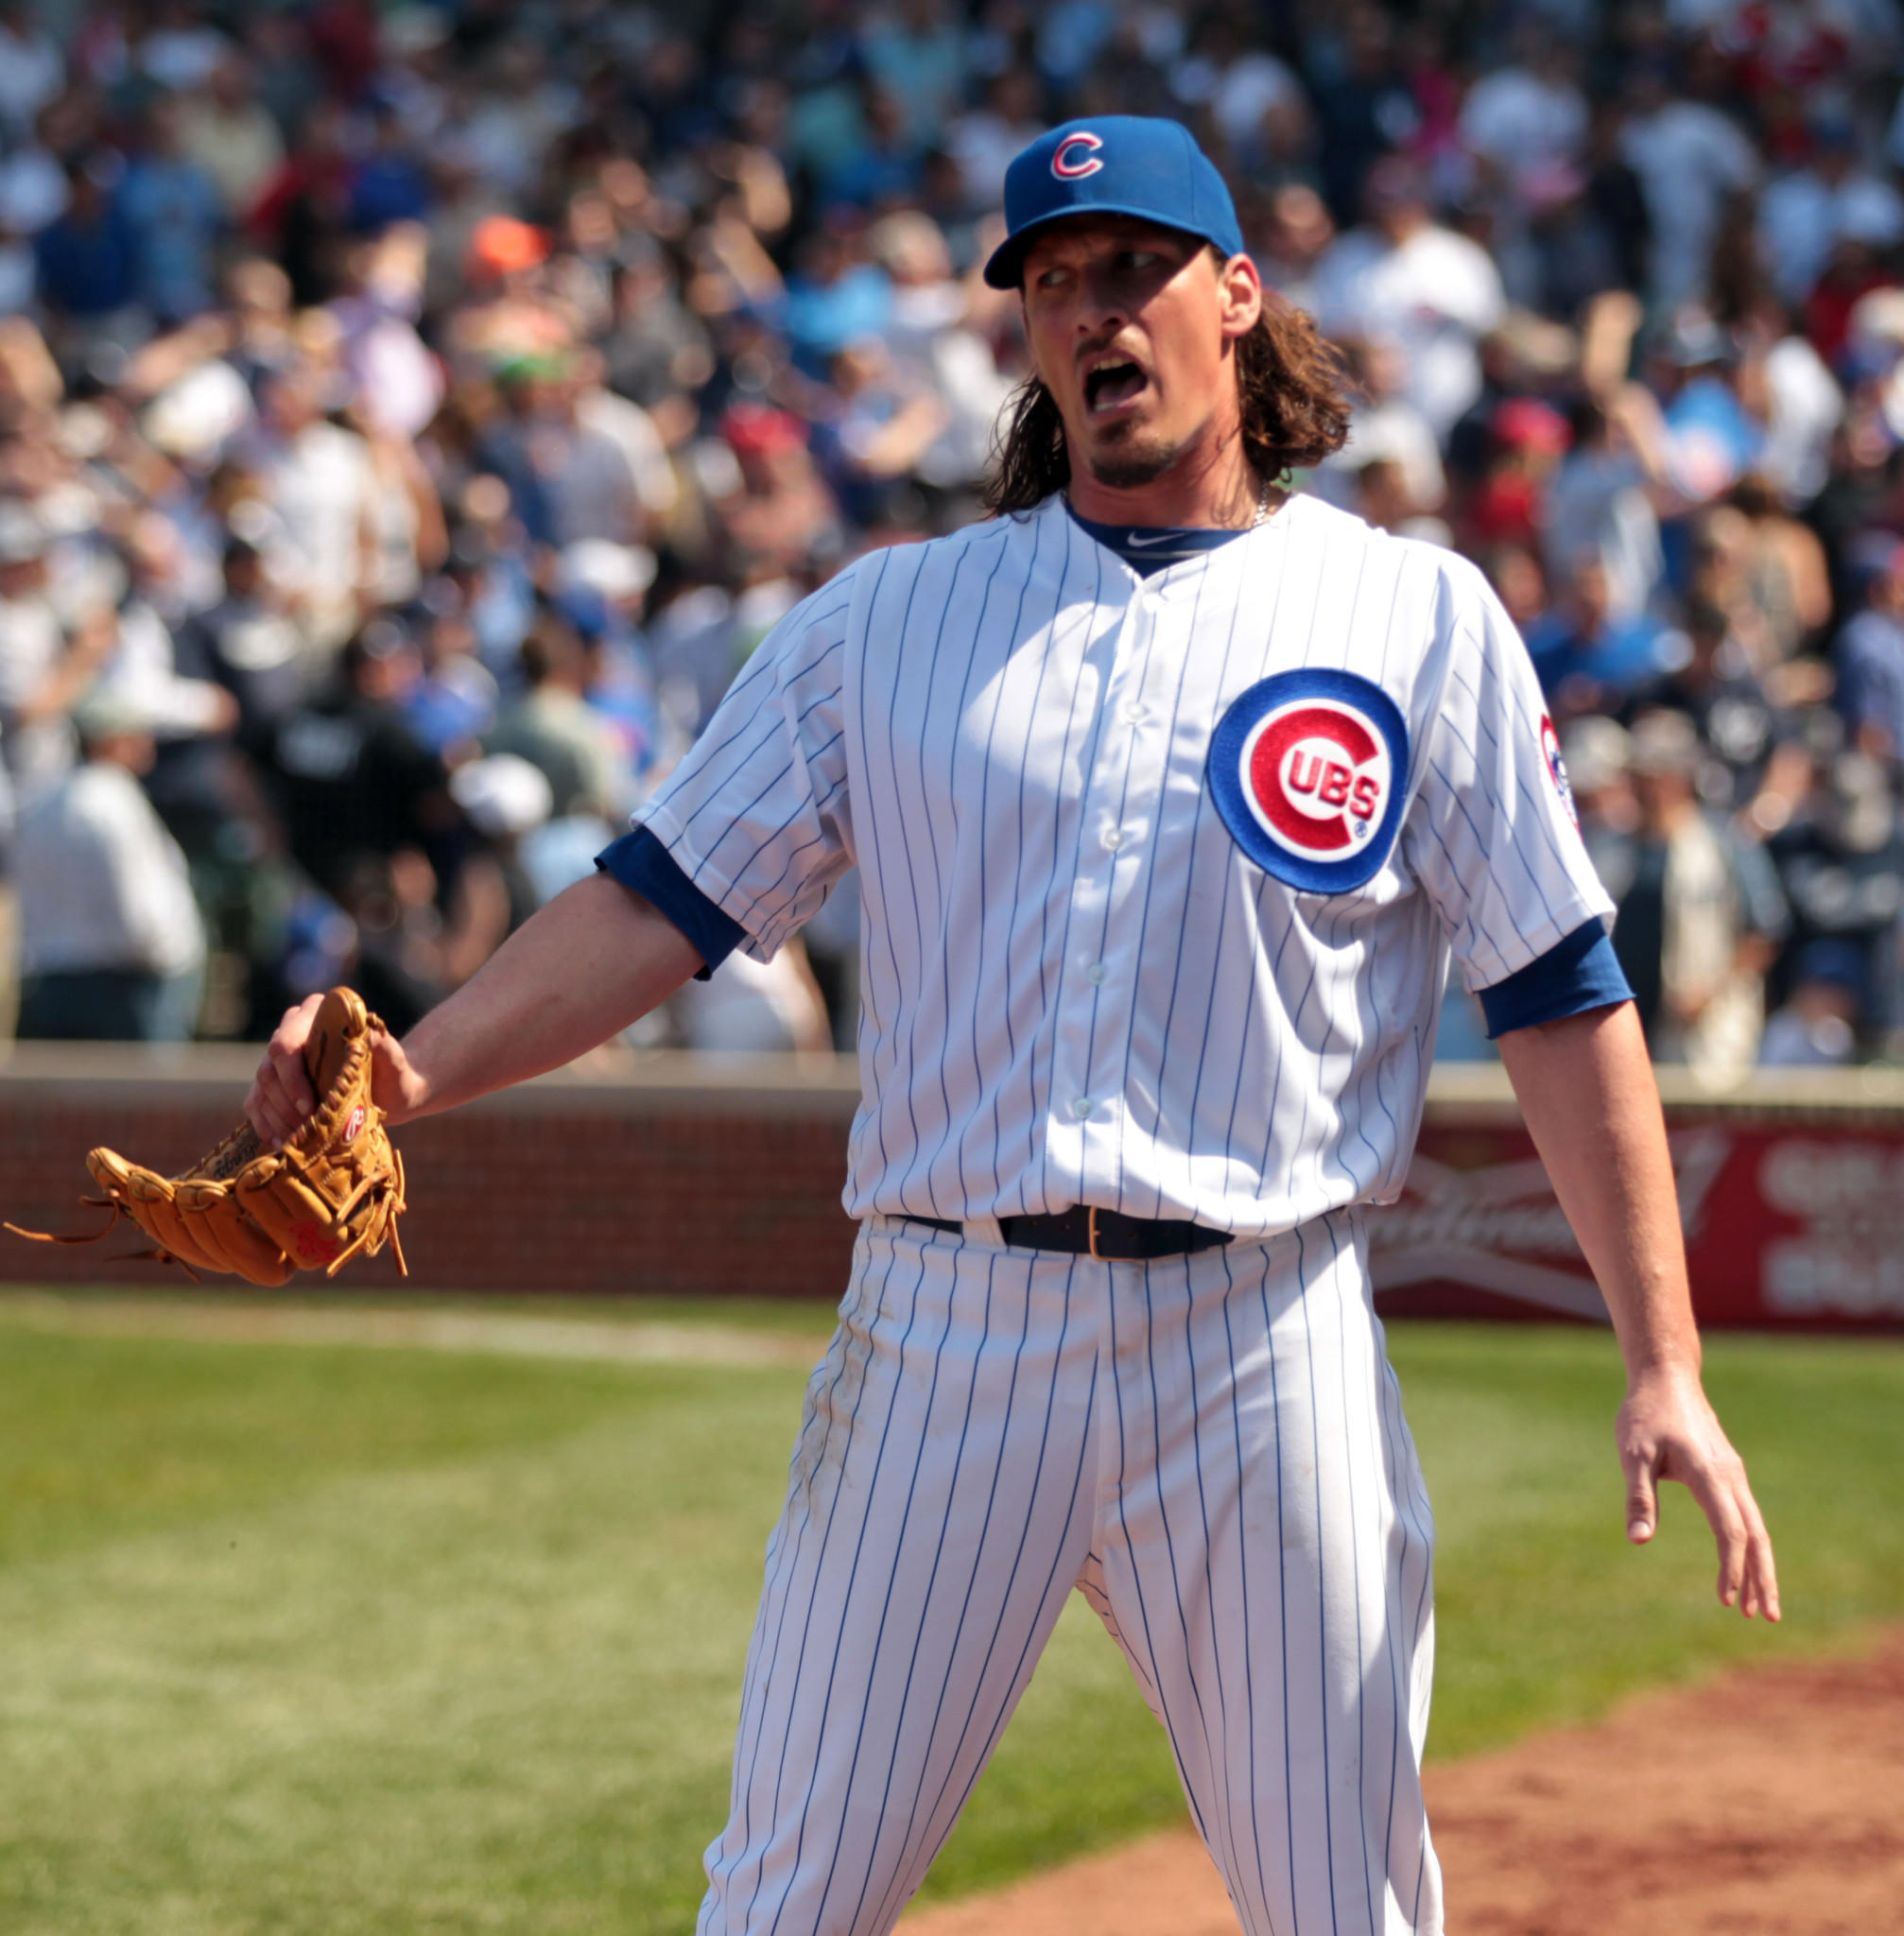 Jeff Samardzija is impressed with his teams defensive work against the Yankees earlier this season.